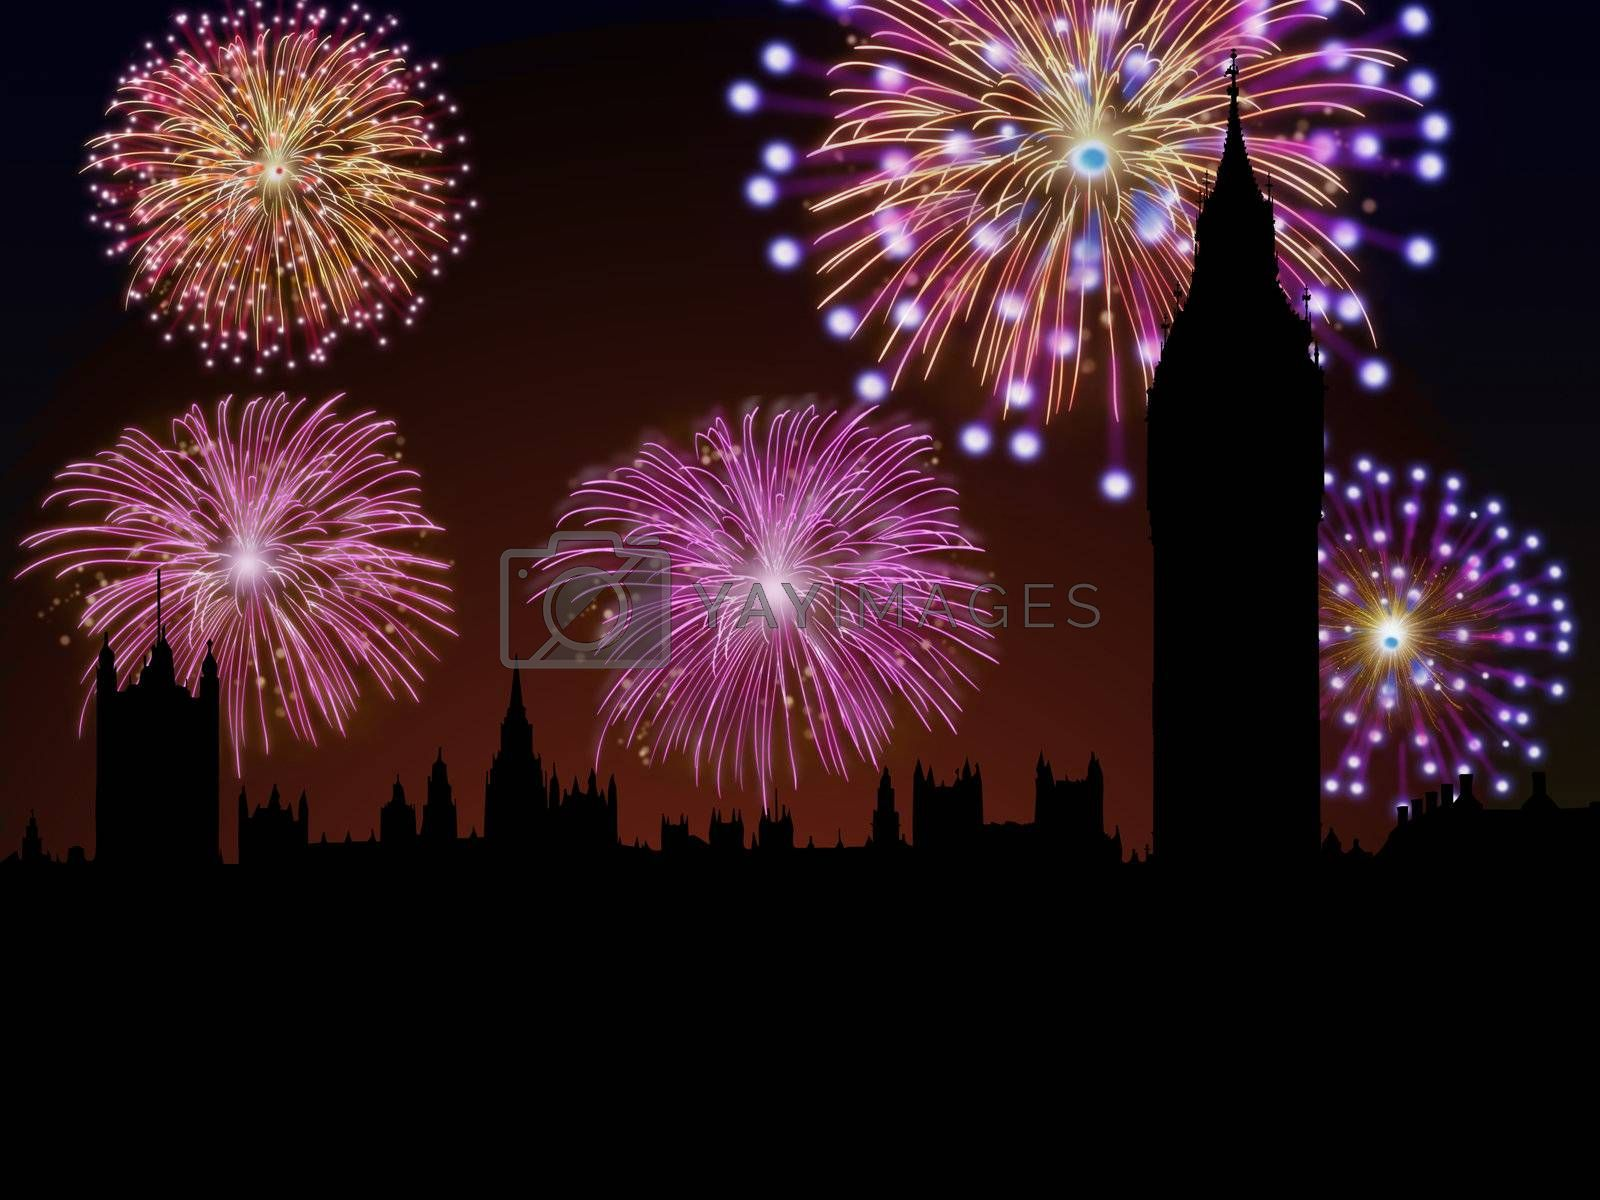 Fireworks happy New year London city Big Ben and House of Parliament scene.